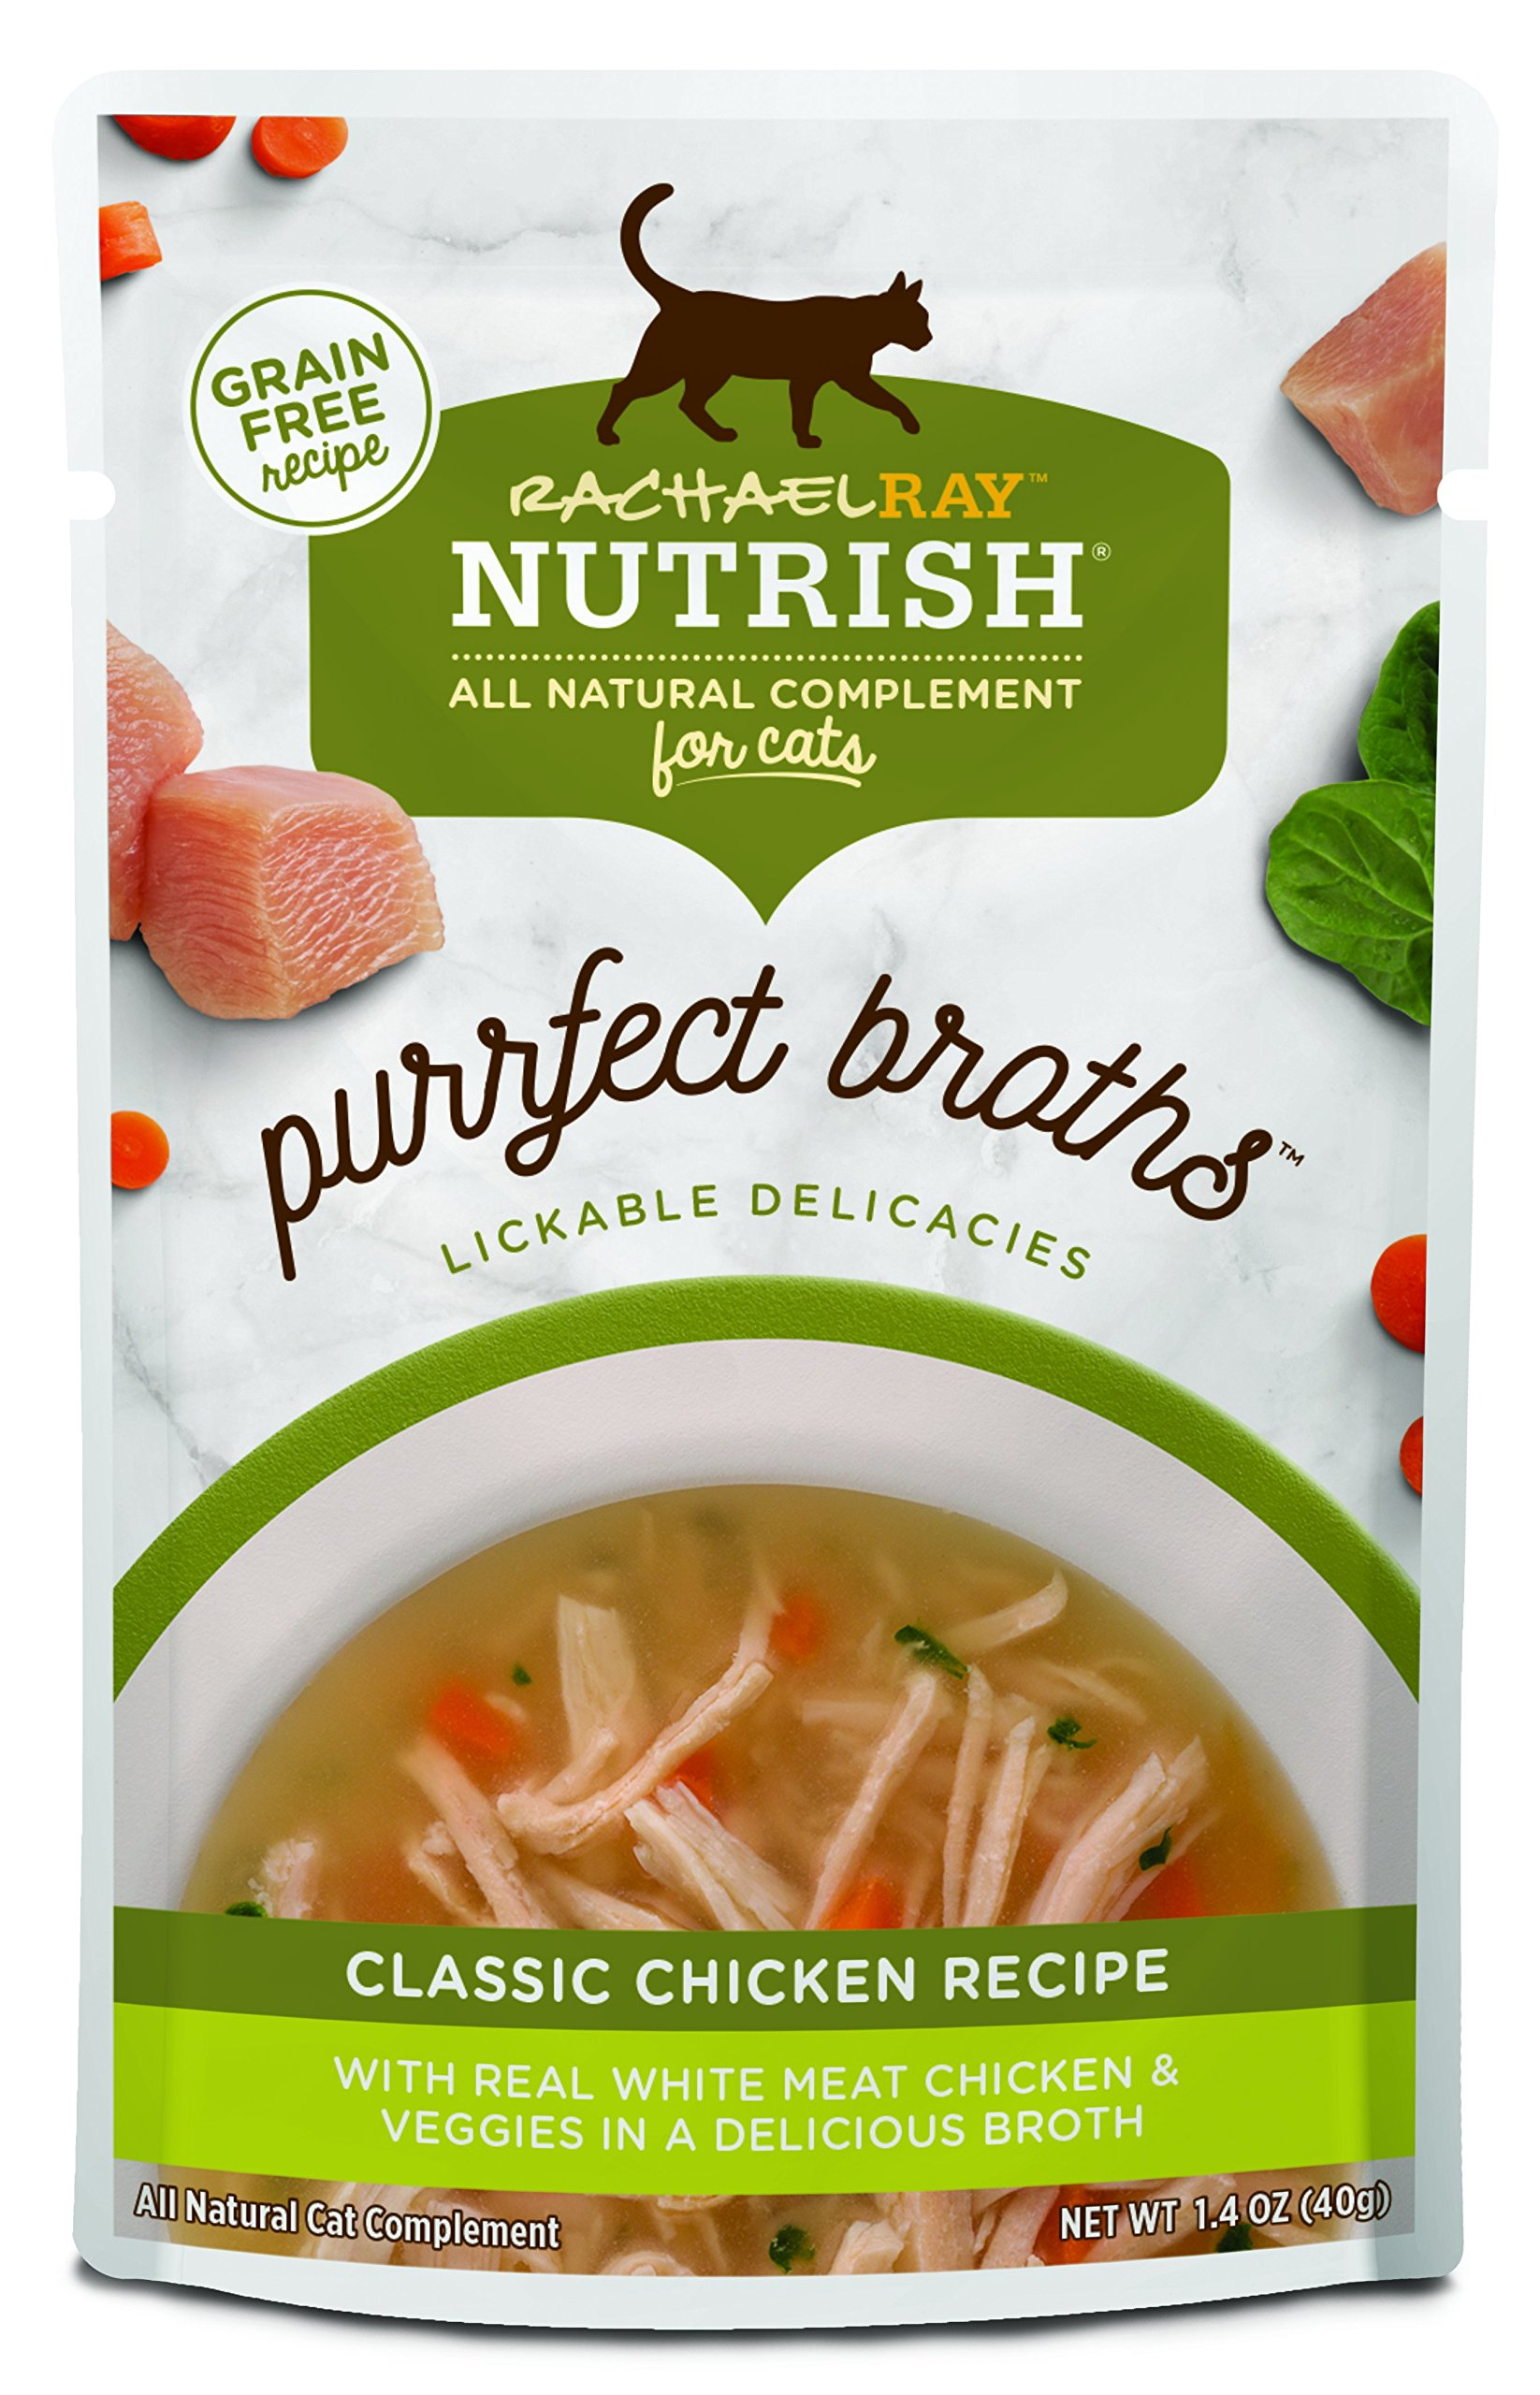 Rachael Ray Nutrish Purrfect Broths All Natural Wet Food Complement for Cats, Grain Free Classic Chicken Recipe, 1.4 oz. Pouch (Pack of 24) by Rachael Ray Nutrish